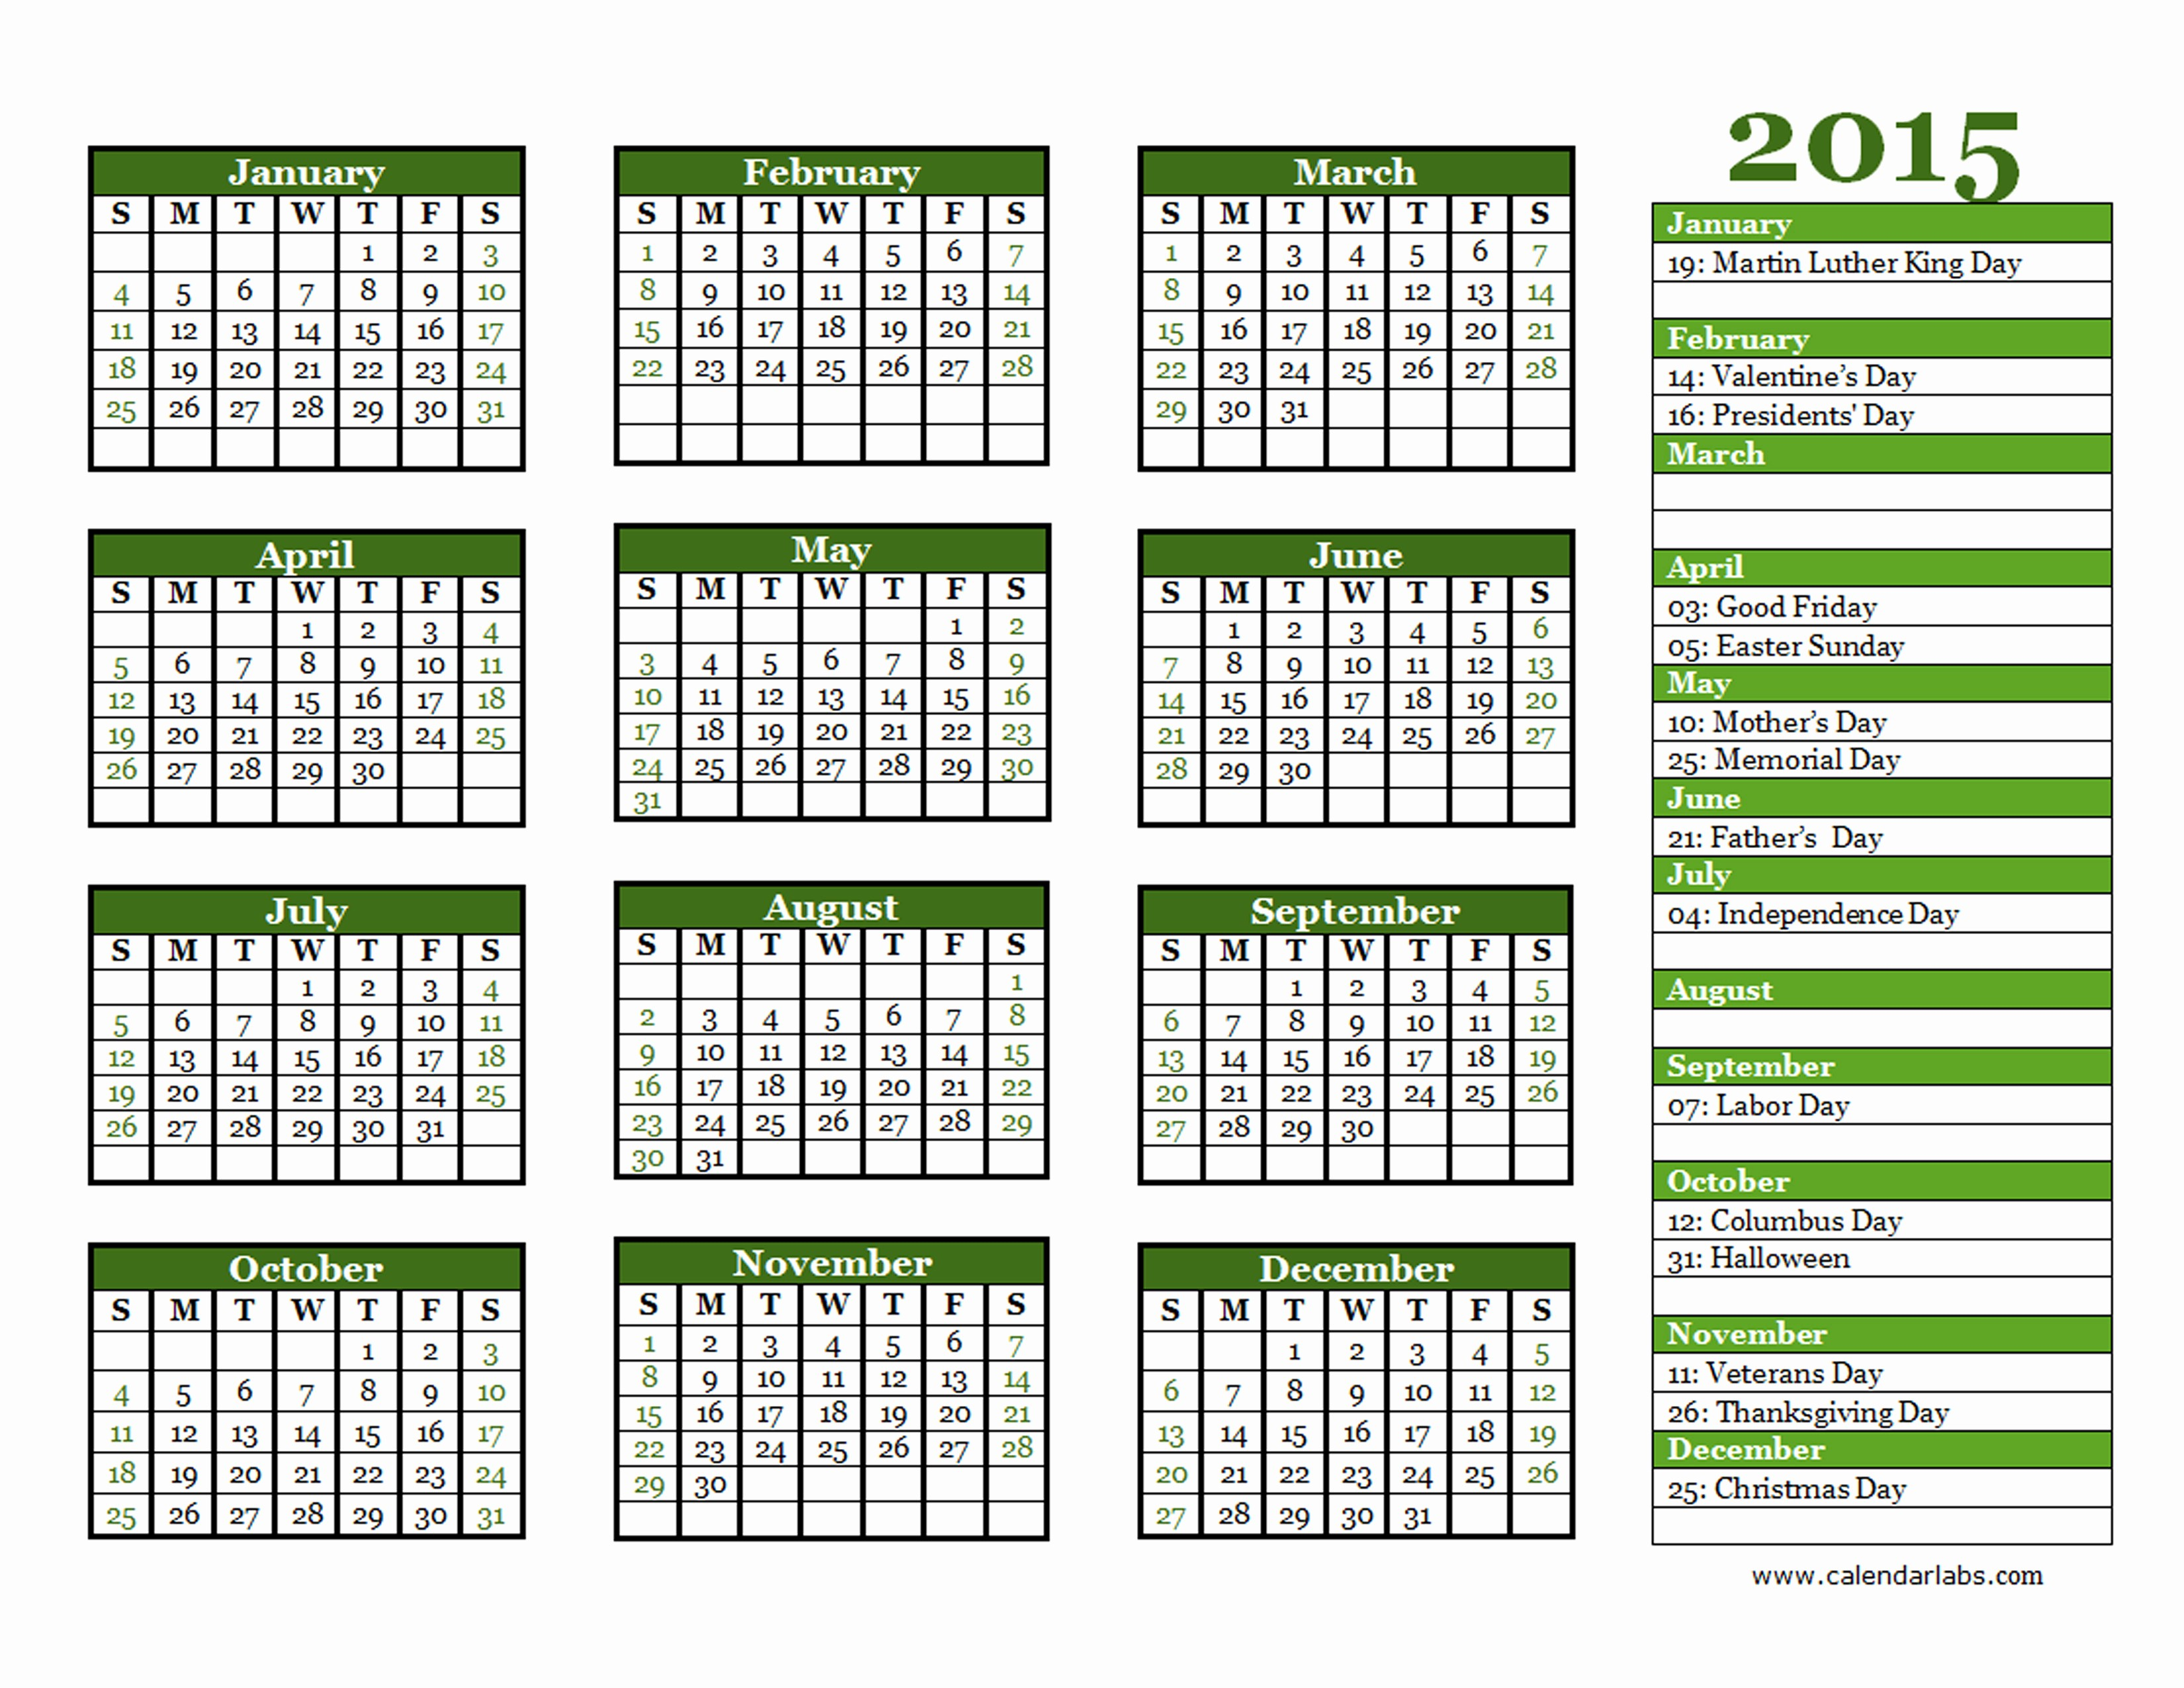 Free Yearly Calendar Templates 2015 Elegant 2015 Yearly Calendar Template 06 Free Printable Templates